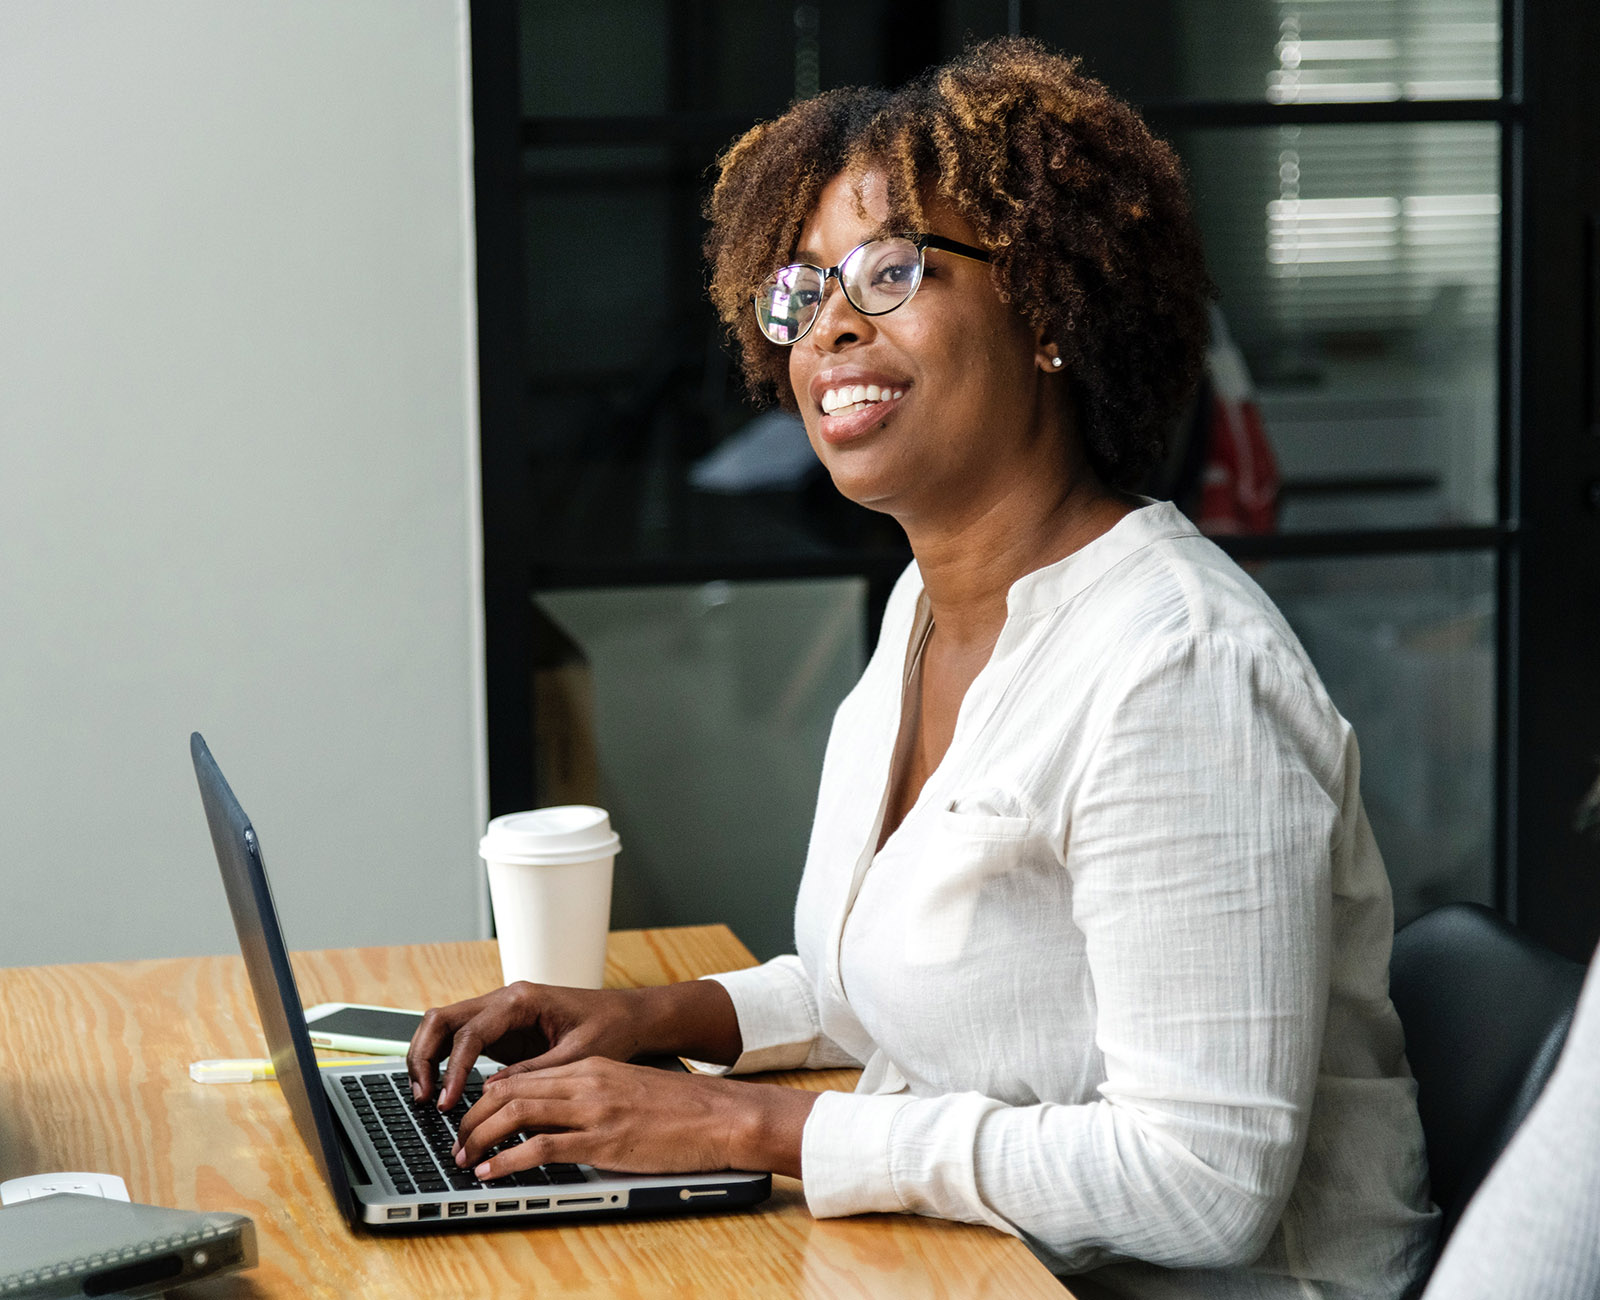 Female-identifying coder at laptop smiling, with coffee